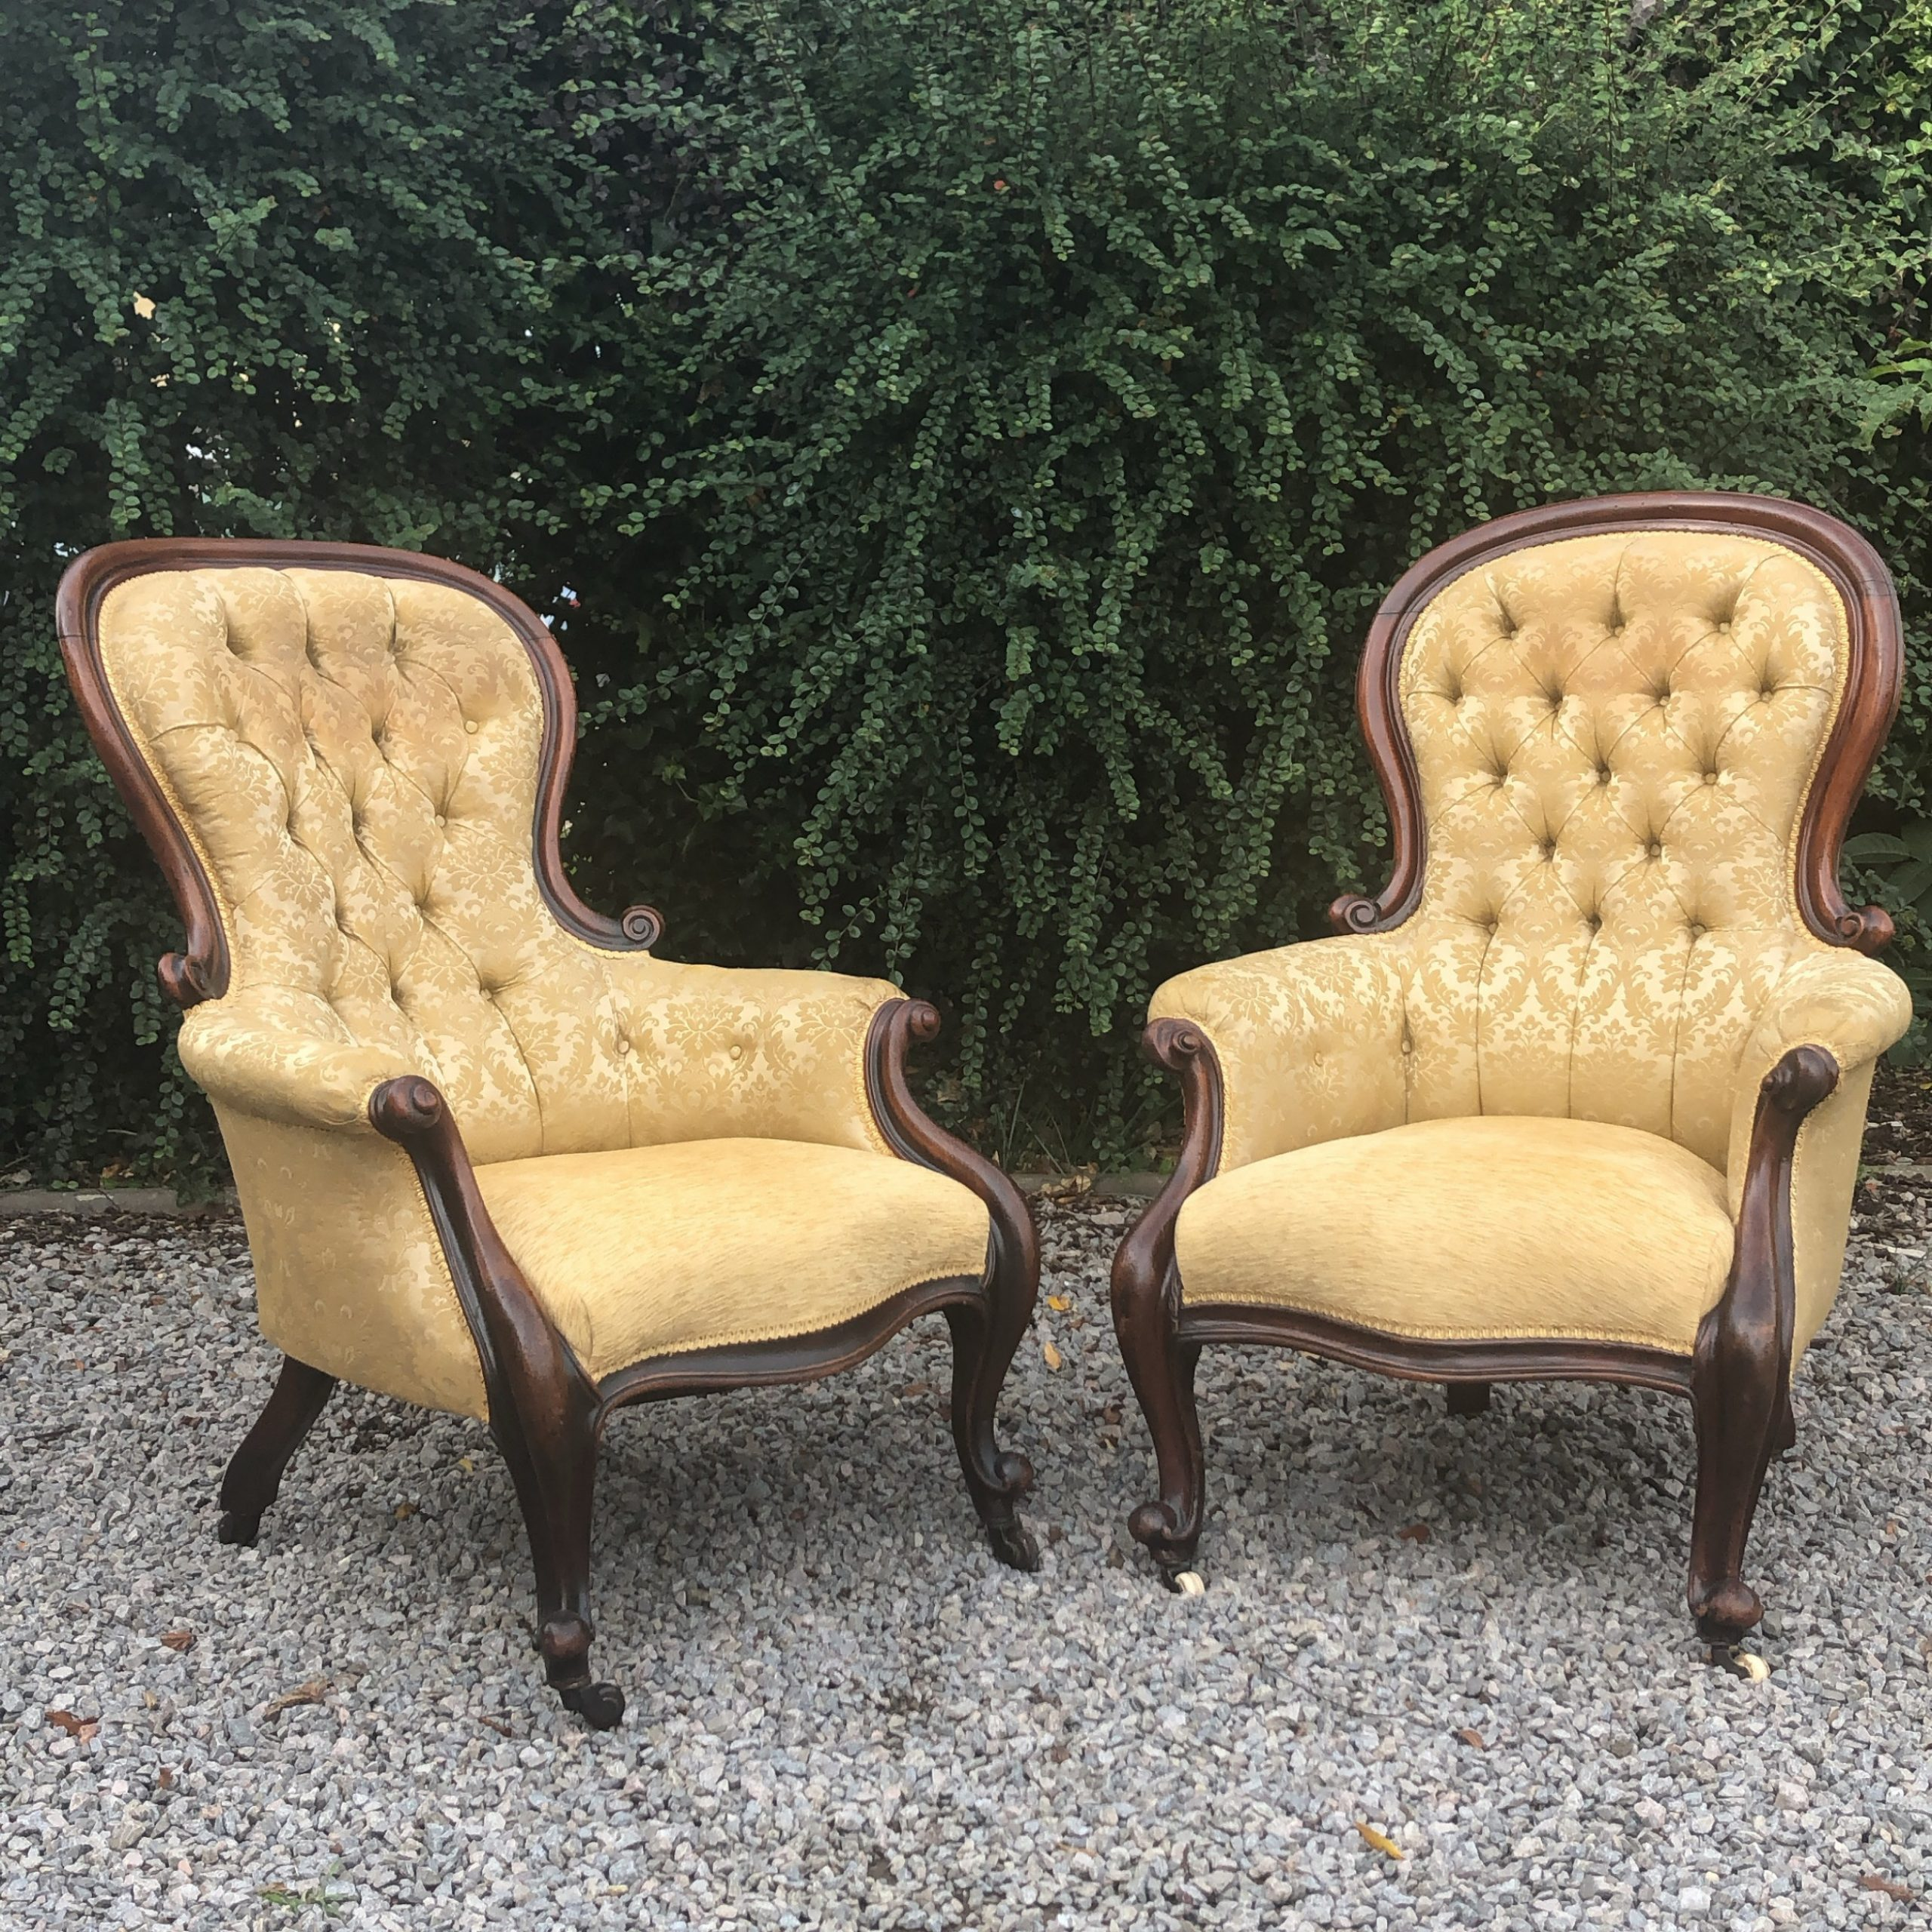 Matched Pair Victorian Mahogany Button Back Armchairs Regarding Reynolds Armchairs (View 3 of 15)